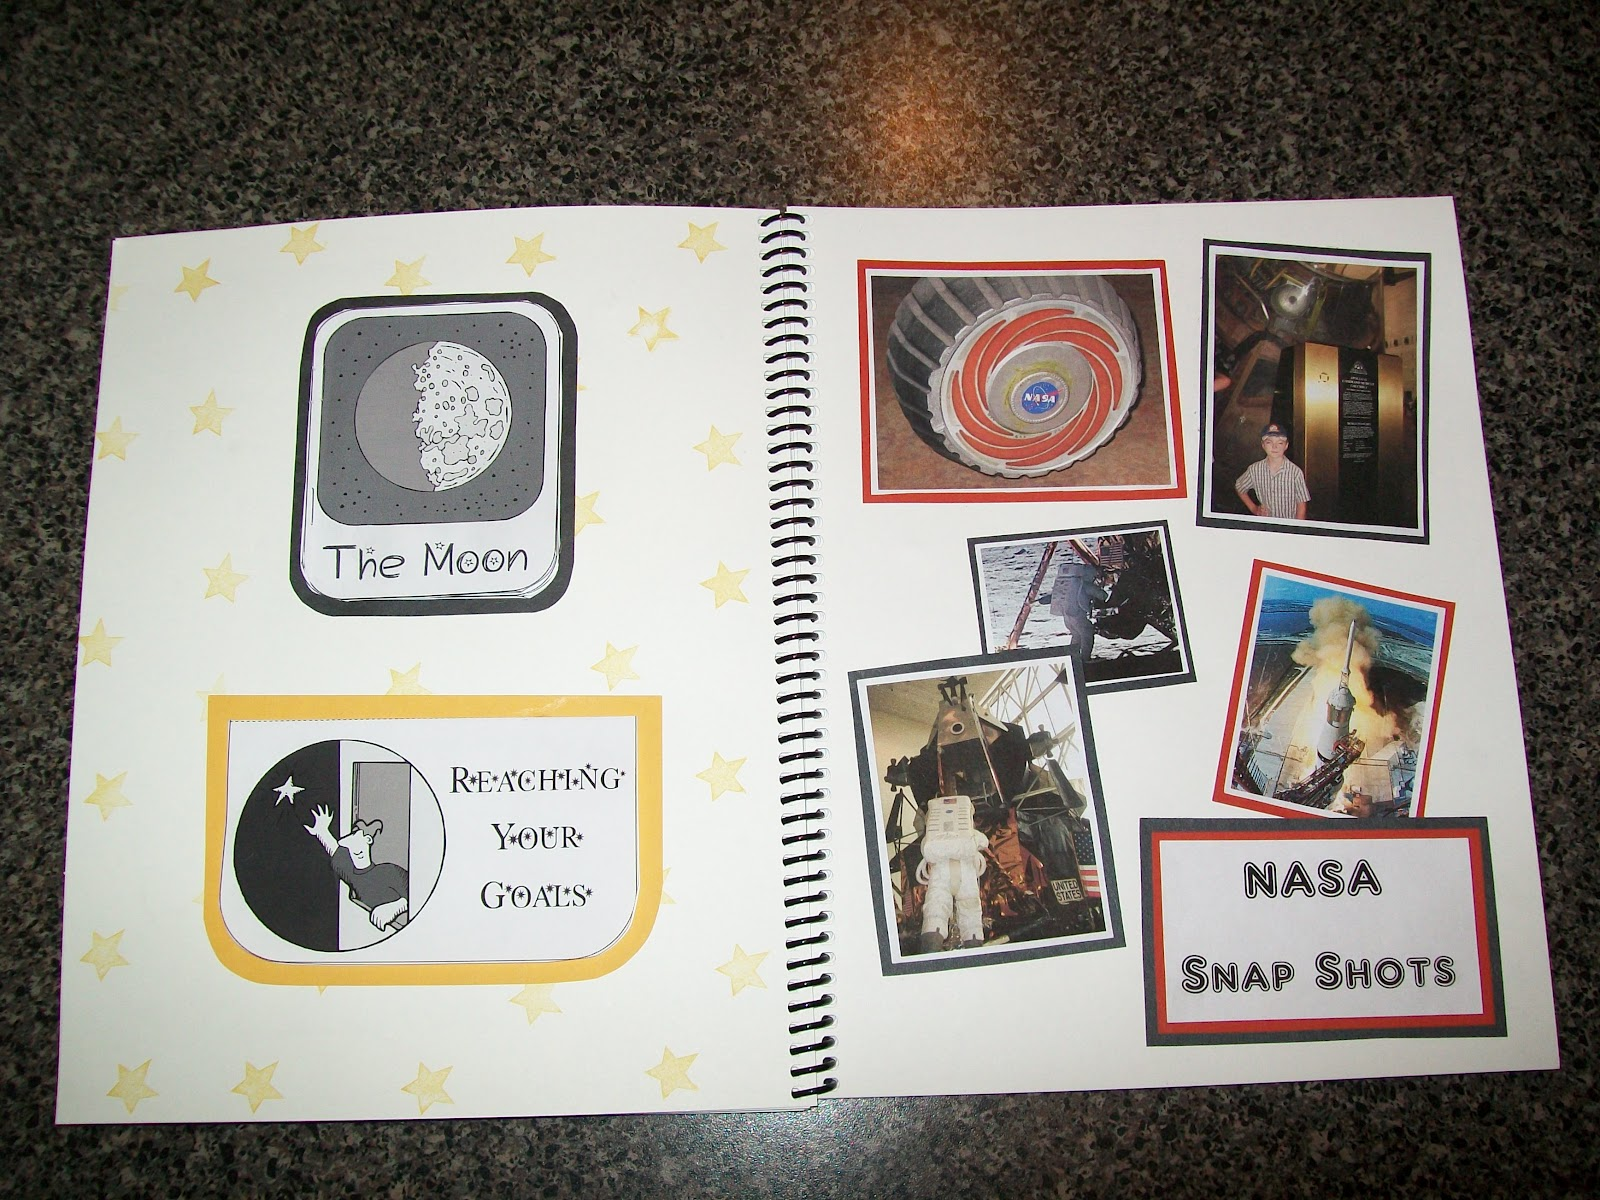 neil armstrong lapbook - photo #39